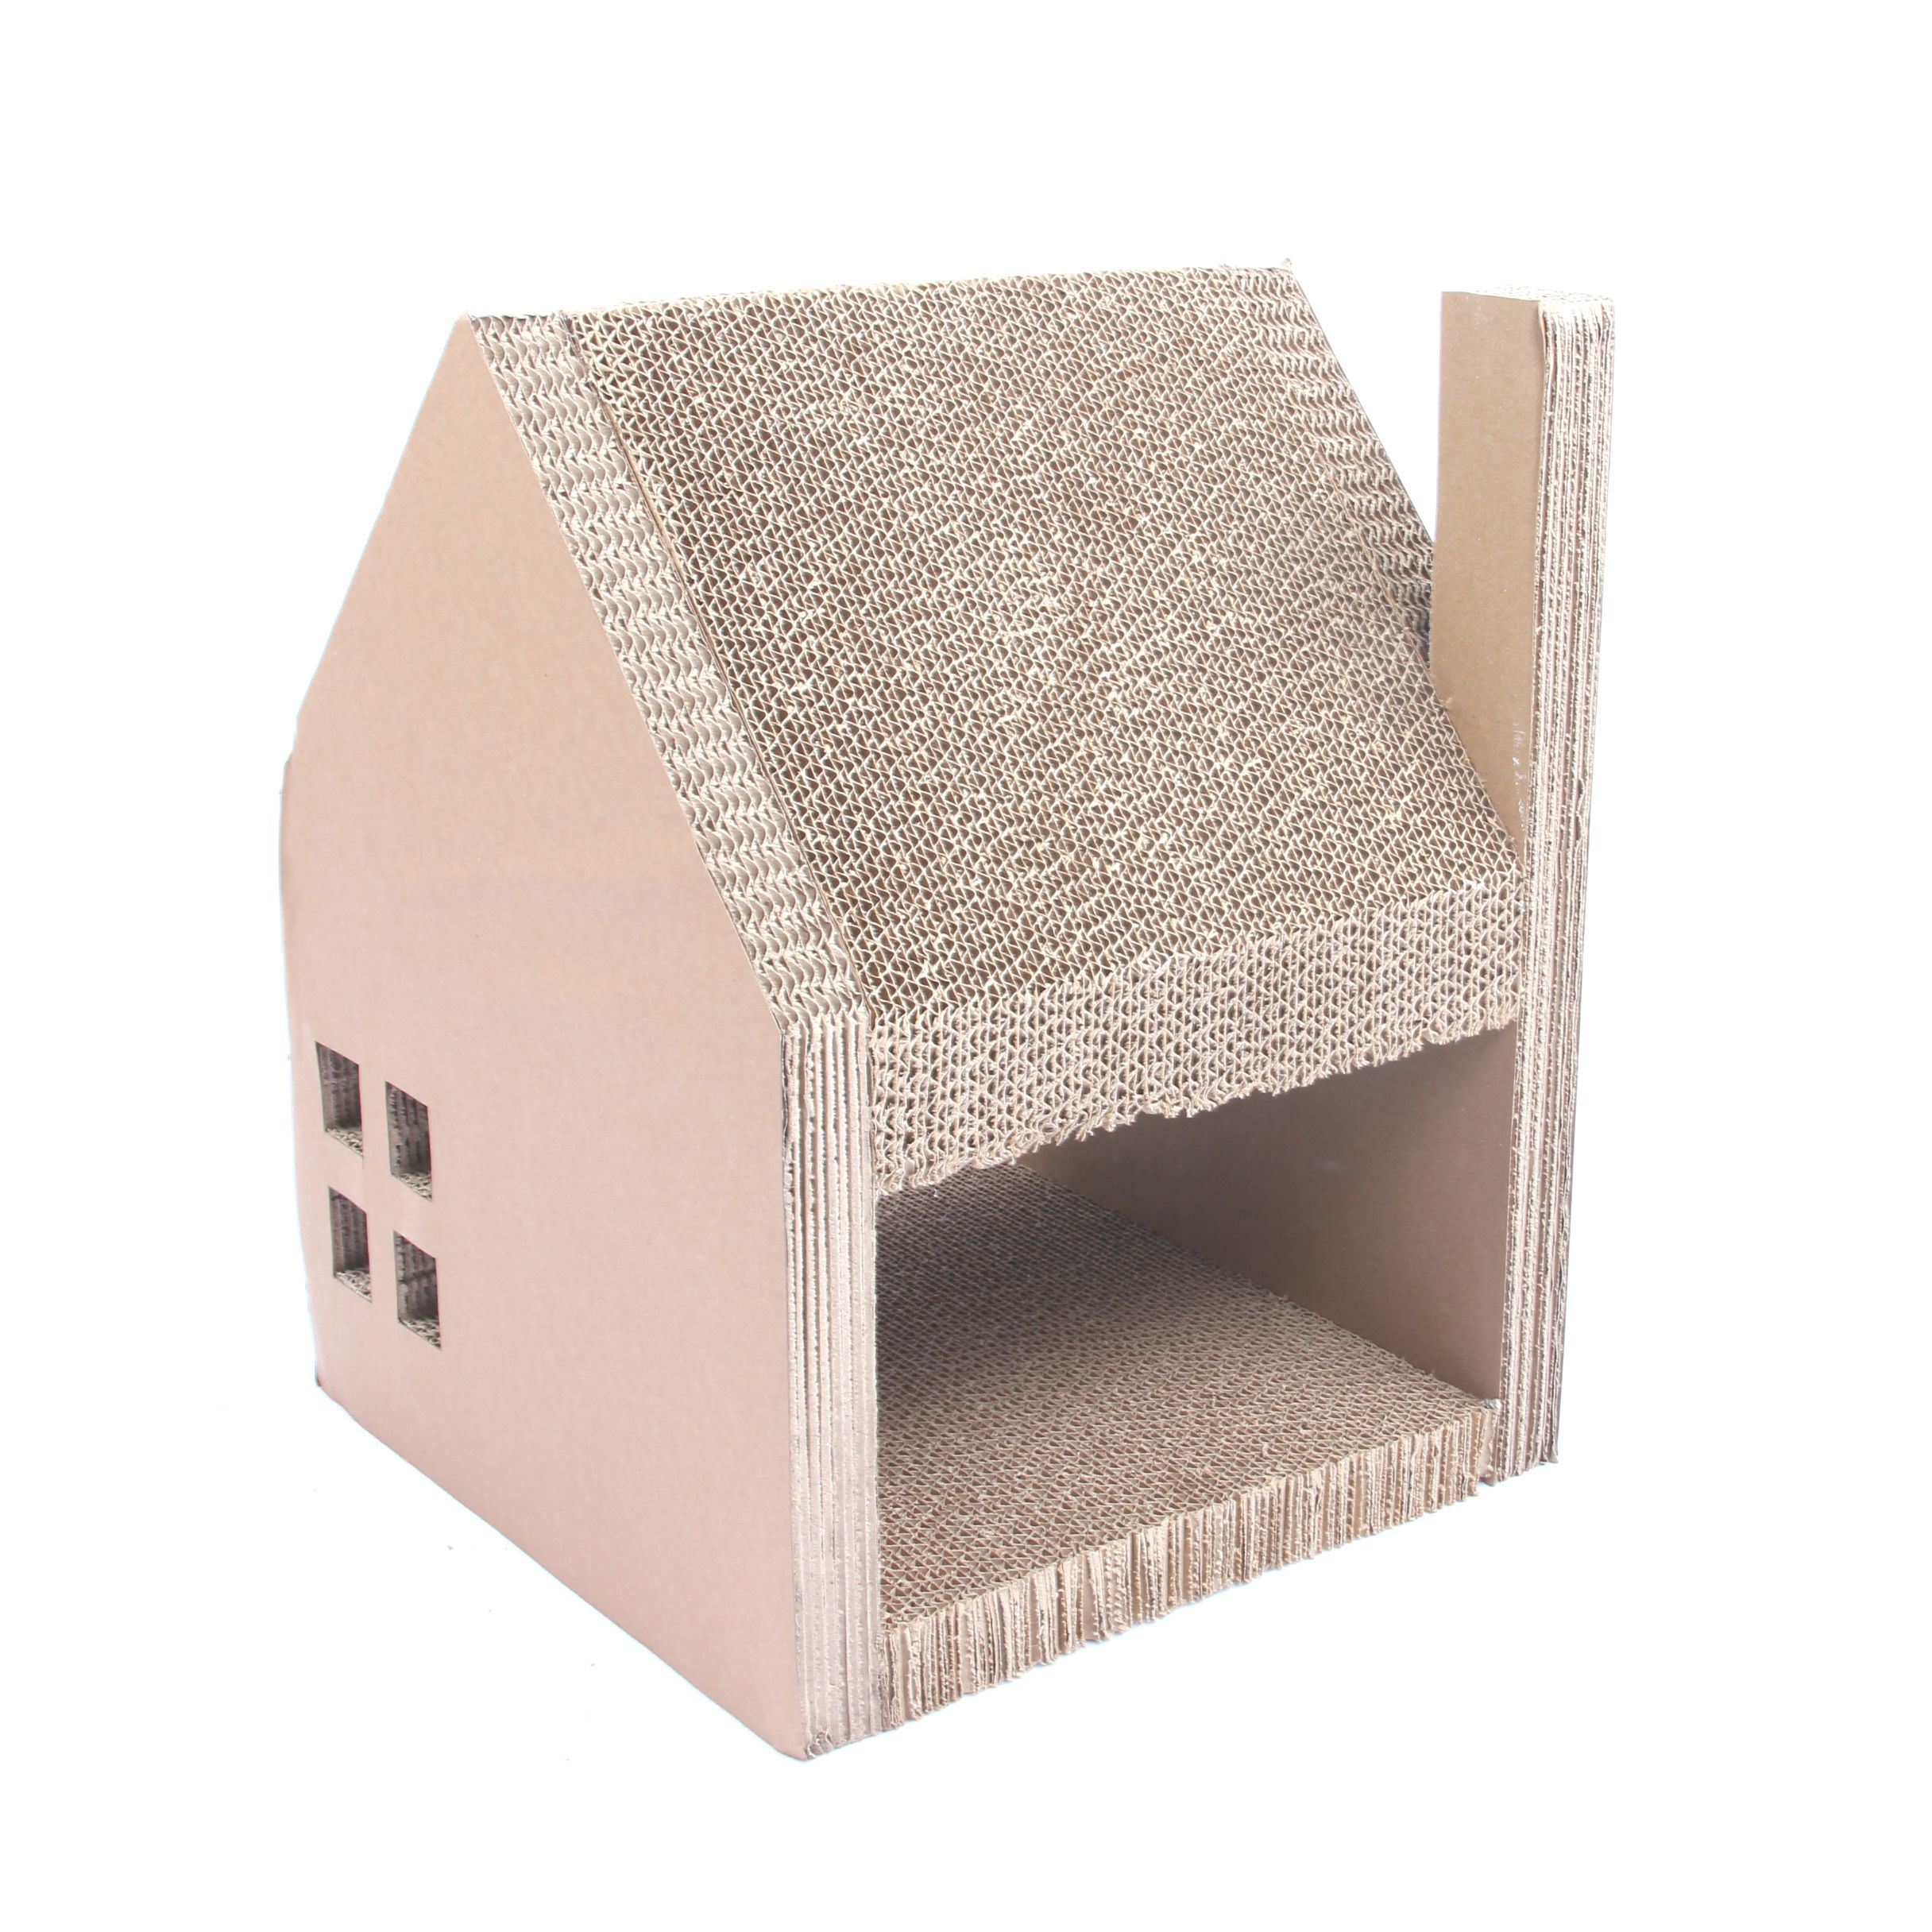 Cardboard House For Cats Corrugated Cardboard Cat House Cat Houses And Cat